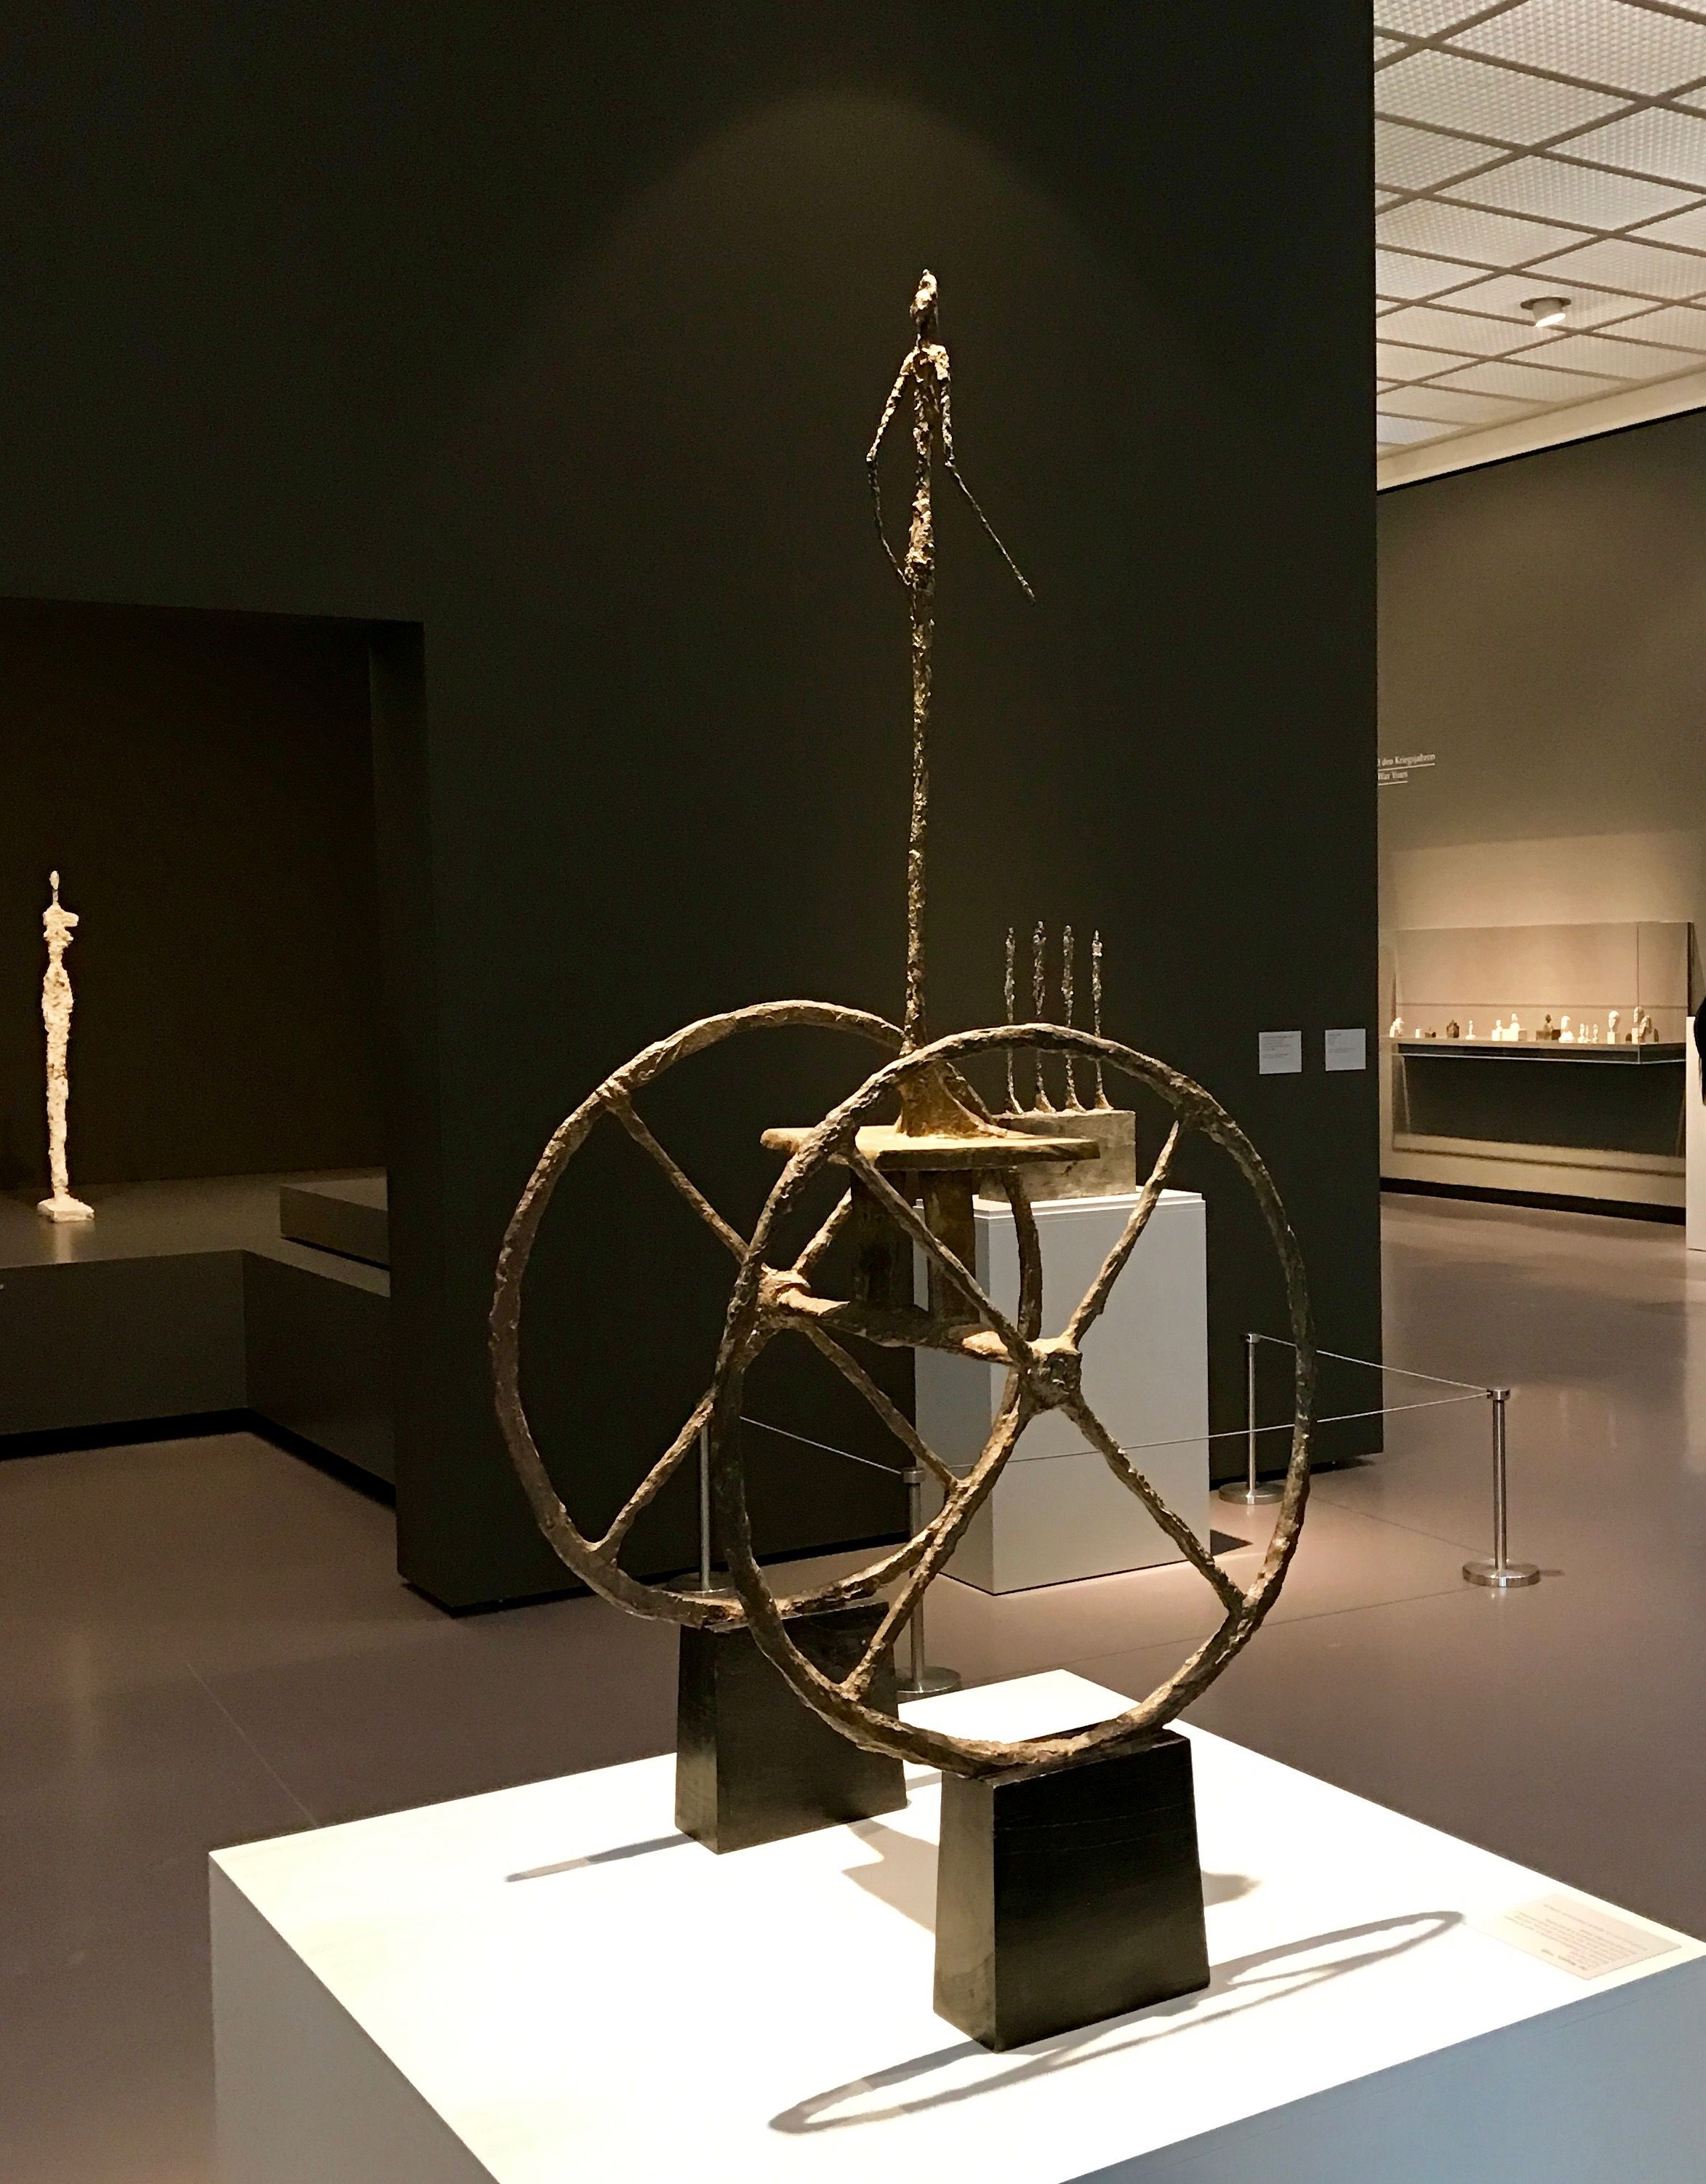 Alberto Giacometti Beyond Bronze At The Kunst Museum Zurich 28 October 2016 15 January 2017 Worth The Detour